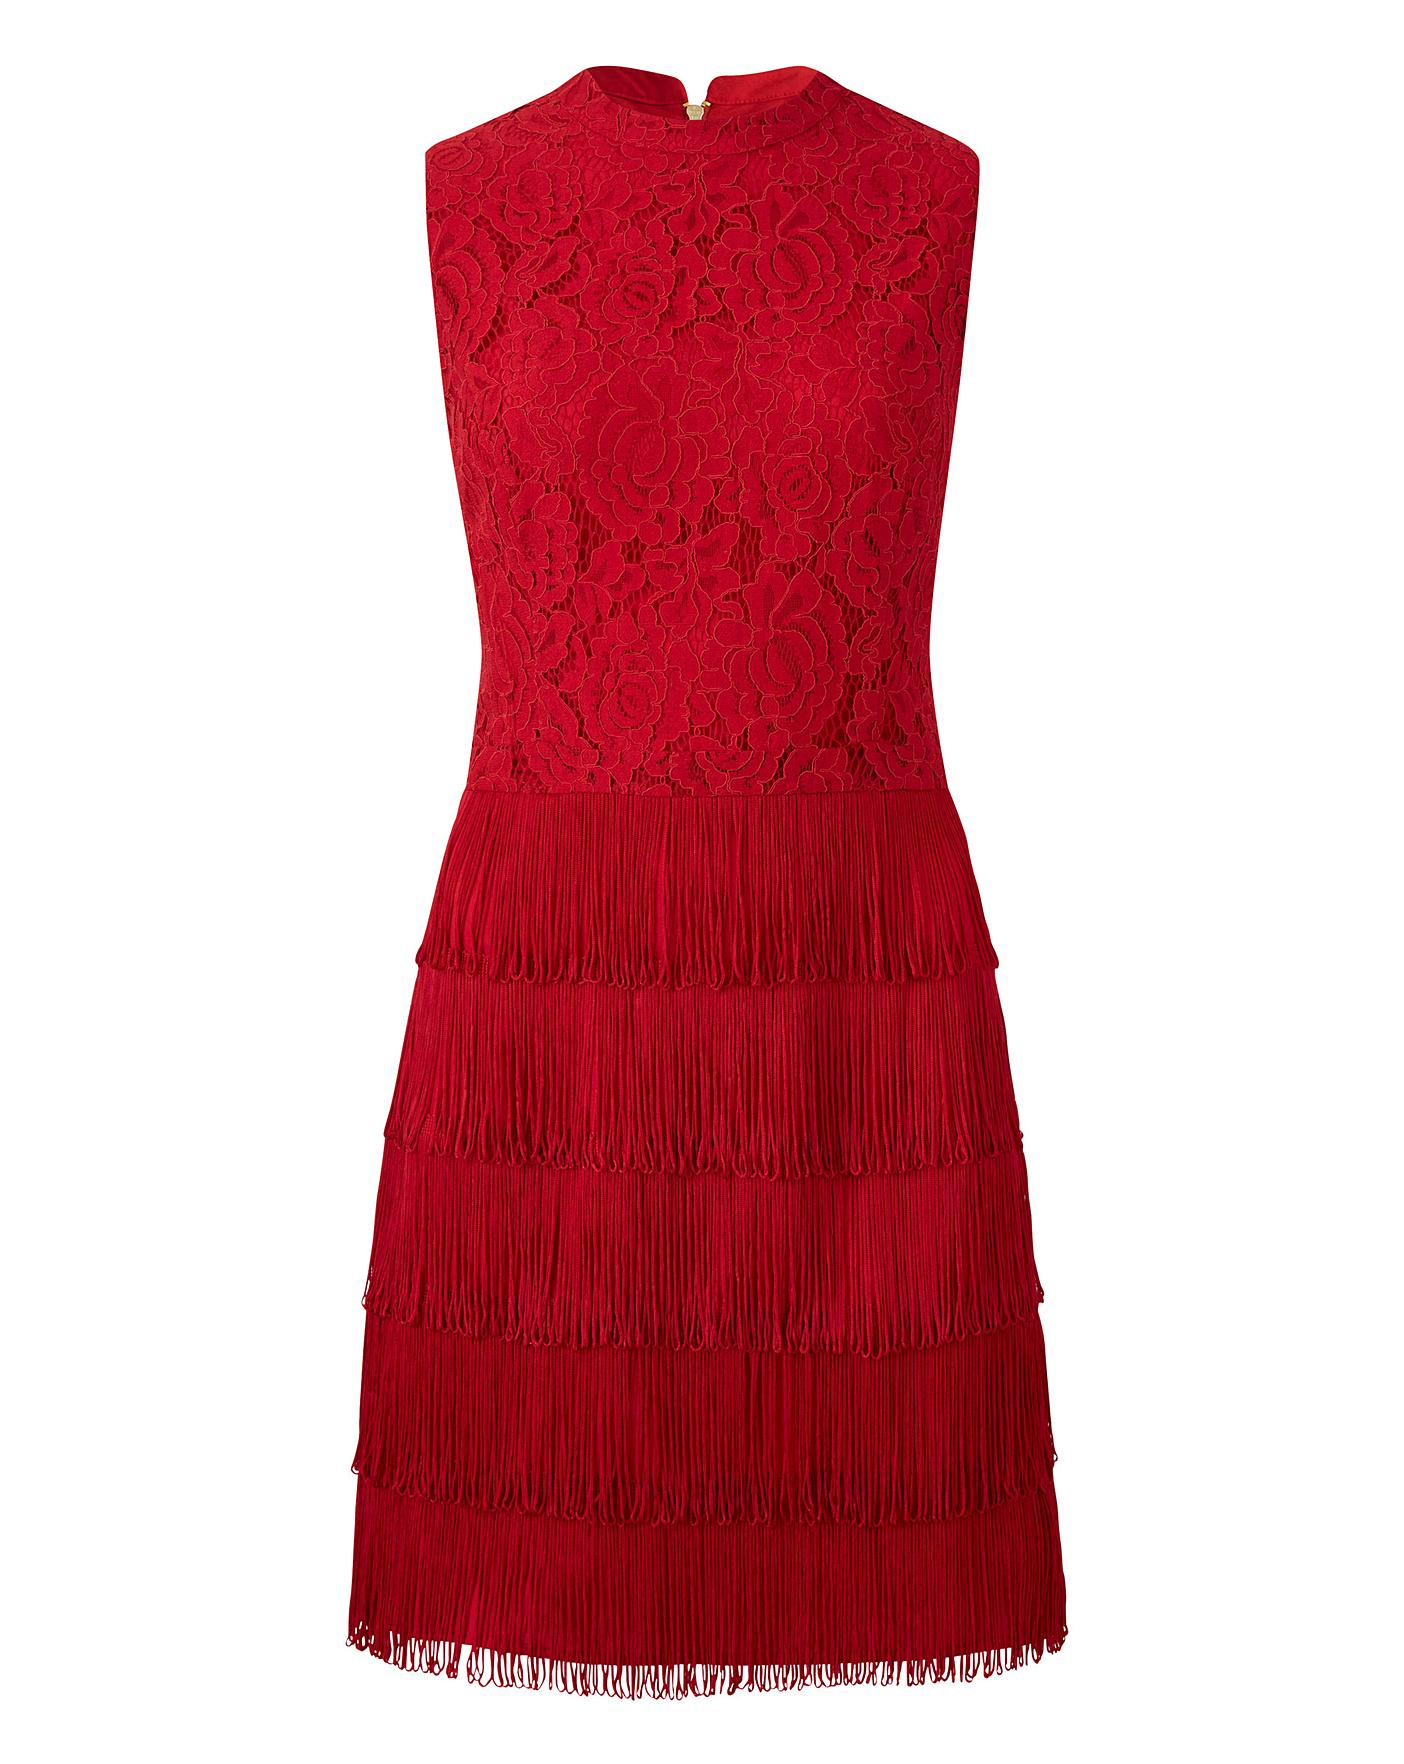 767d6a628f79 Oasis Curve Fringe and Lace Shift Dress | Simply Be